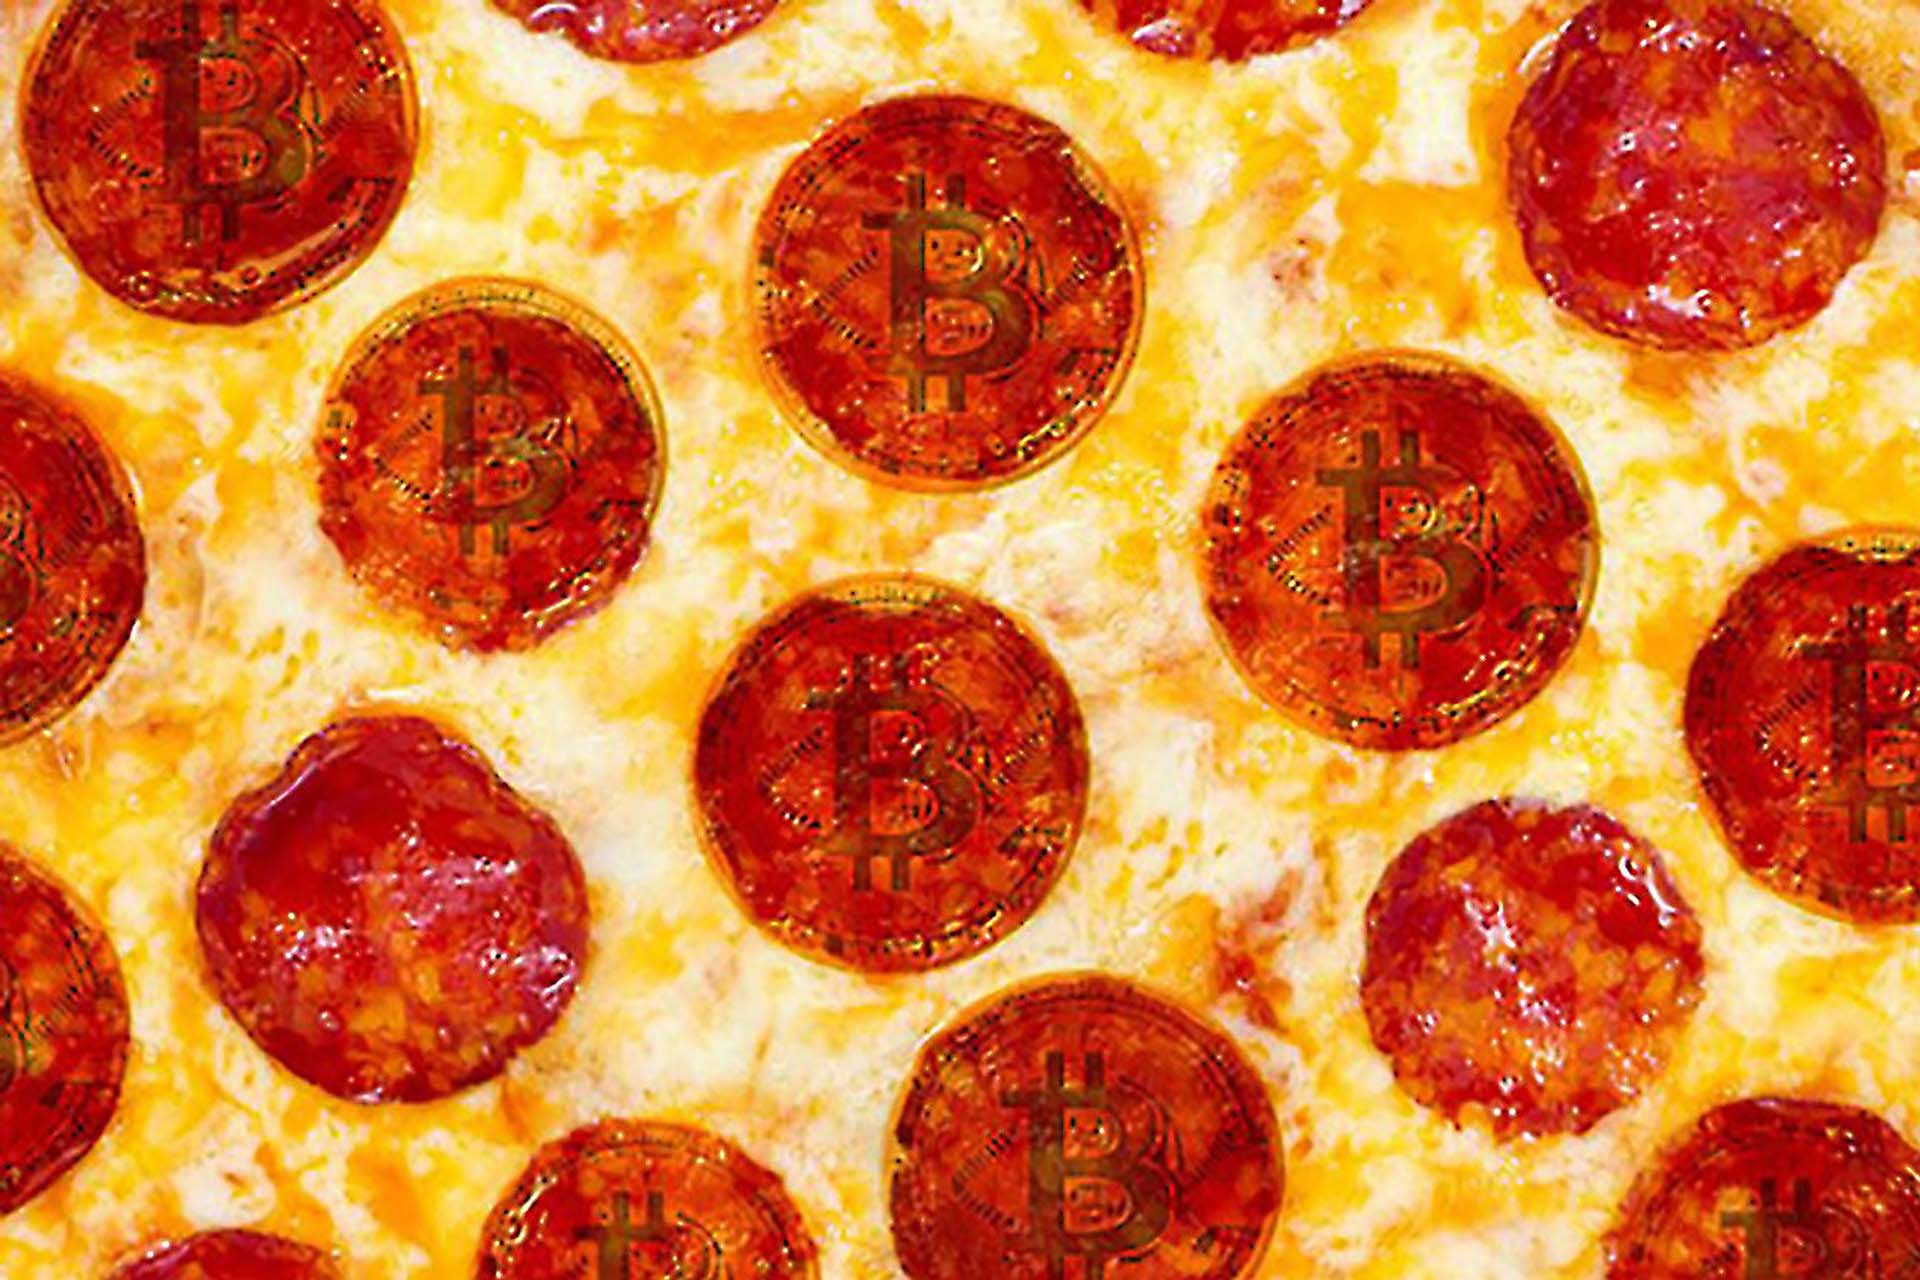 The World Celebrates the 8th Anniversary of the First Bitcoin Transaction: Buying Two Pizzas